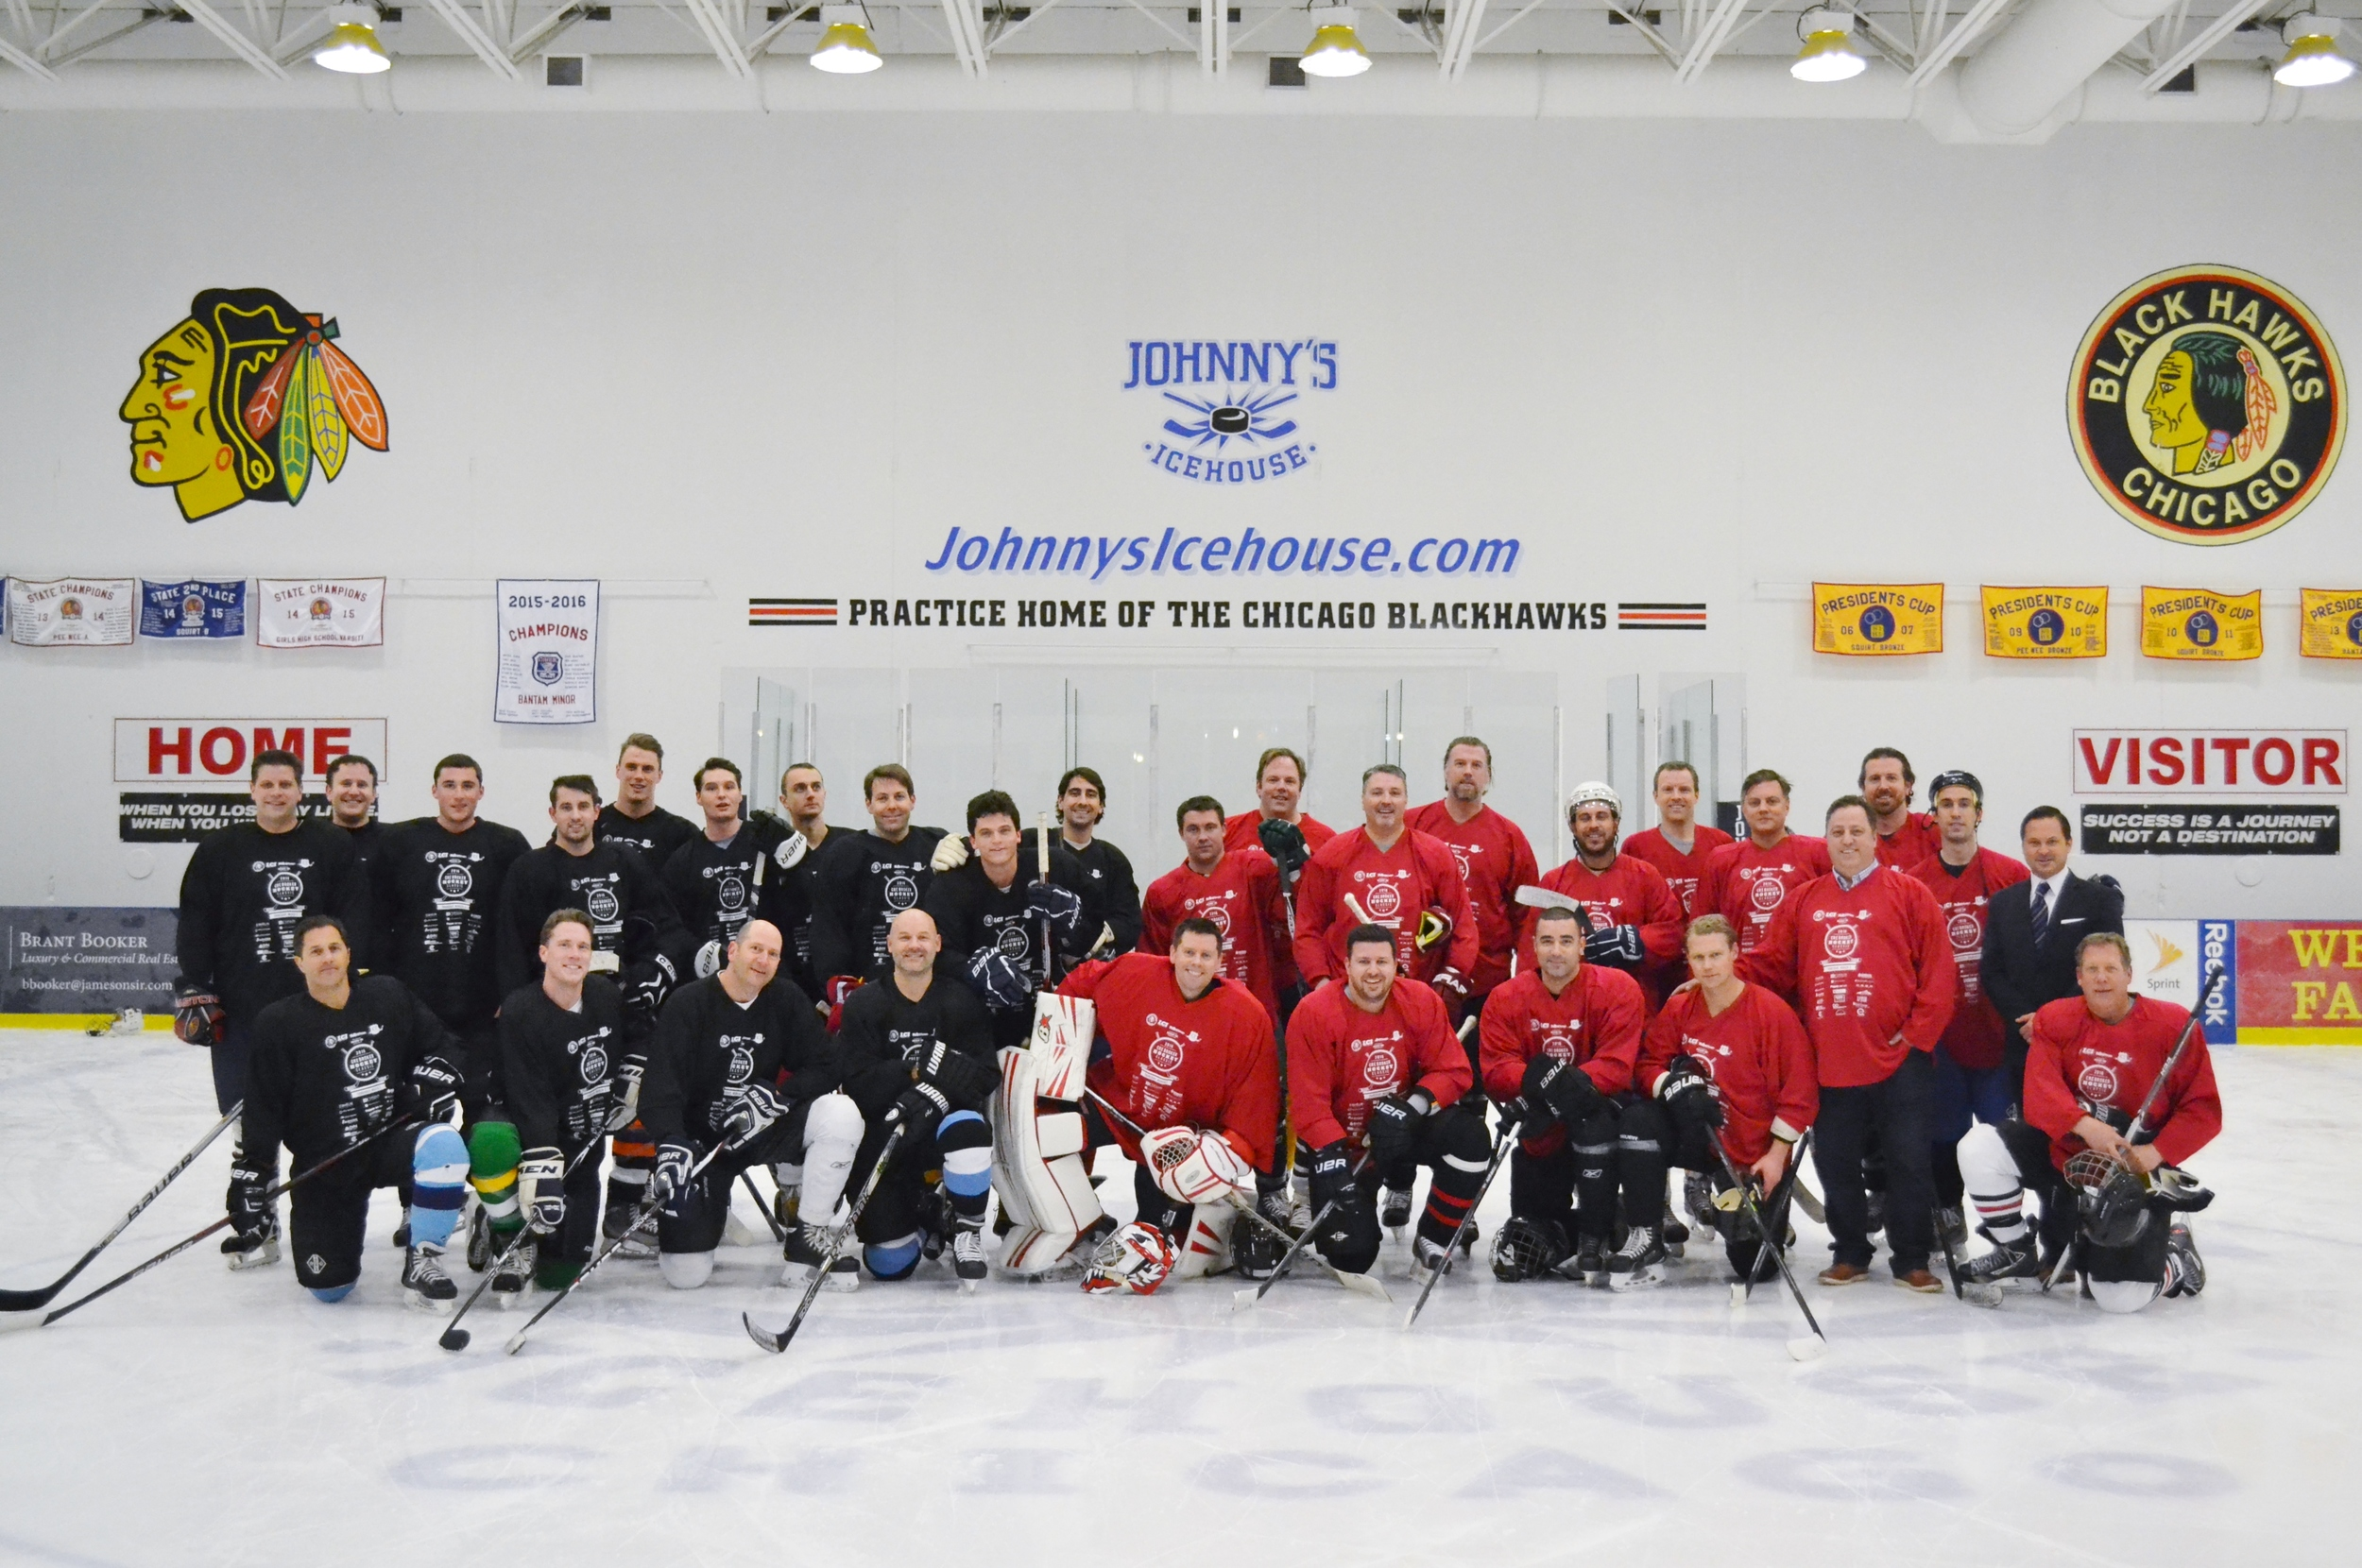 The 2016 CRE Broker Hockey Classic group photo.